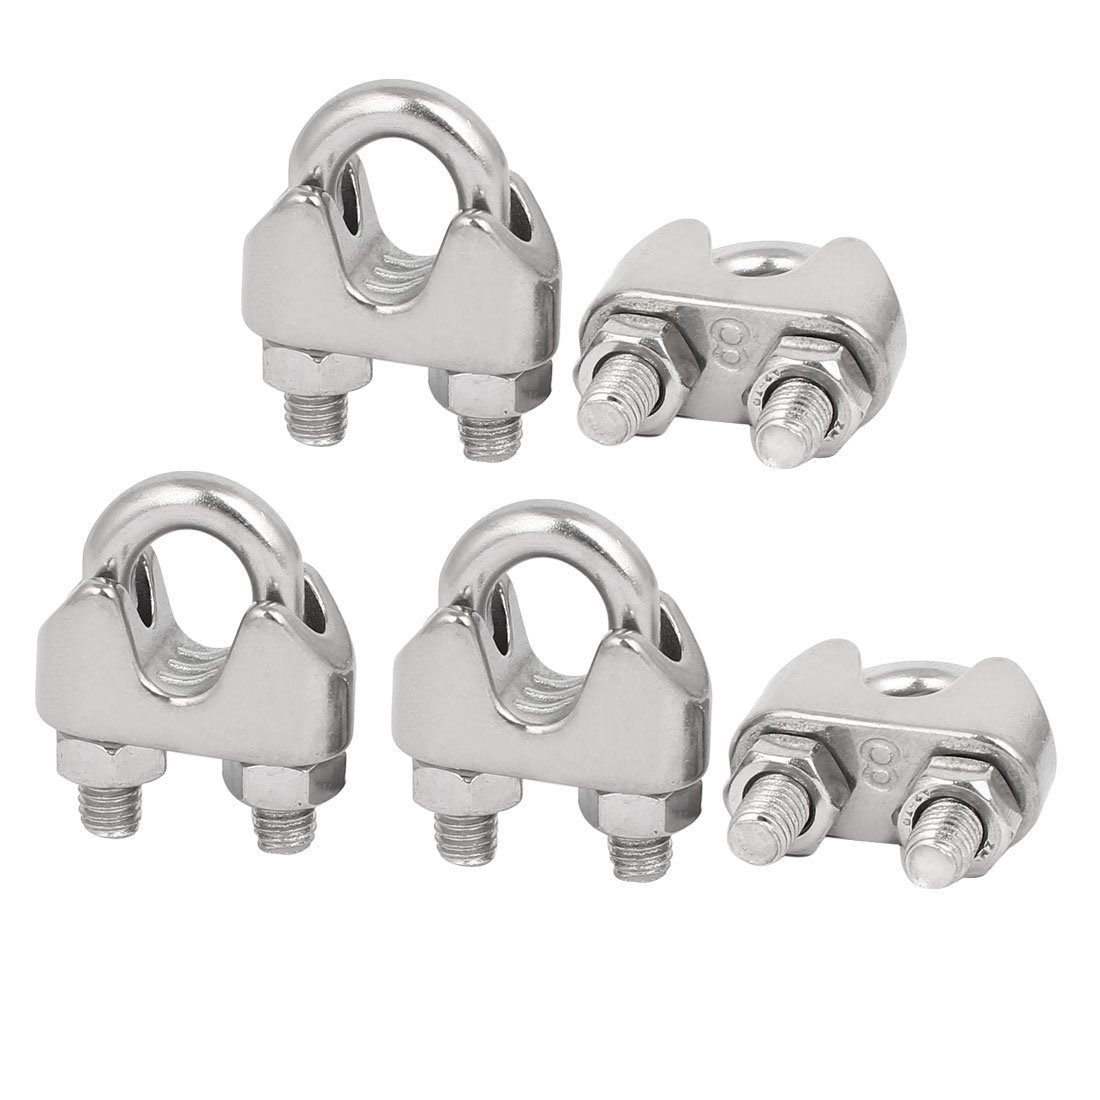 M8 5/16 Inch 304 Stainless Steel U Shape Bolt Saddle Clamps Cable ...